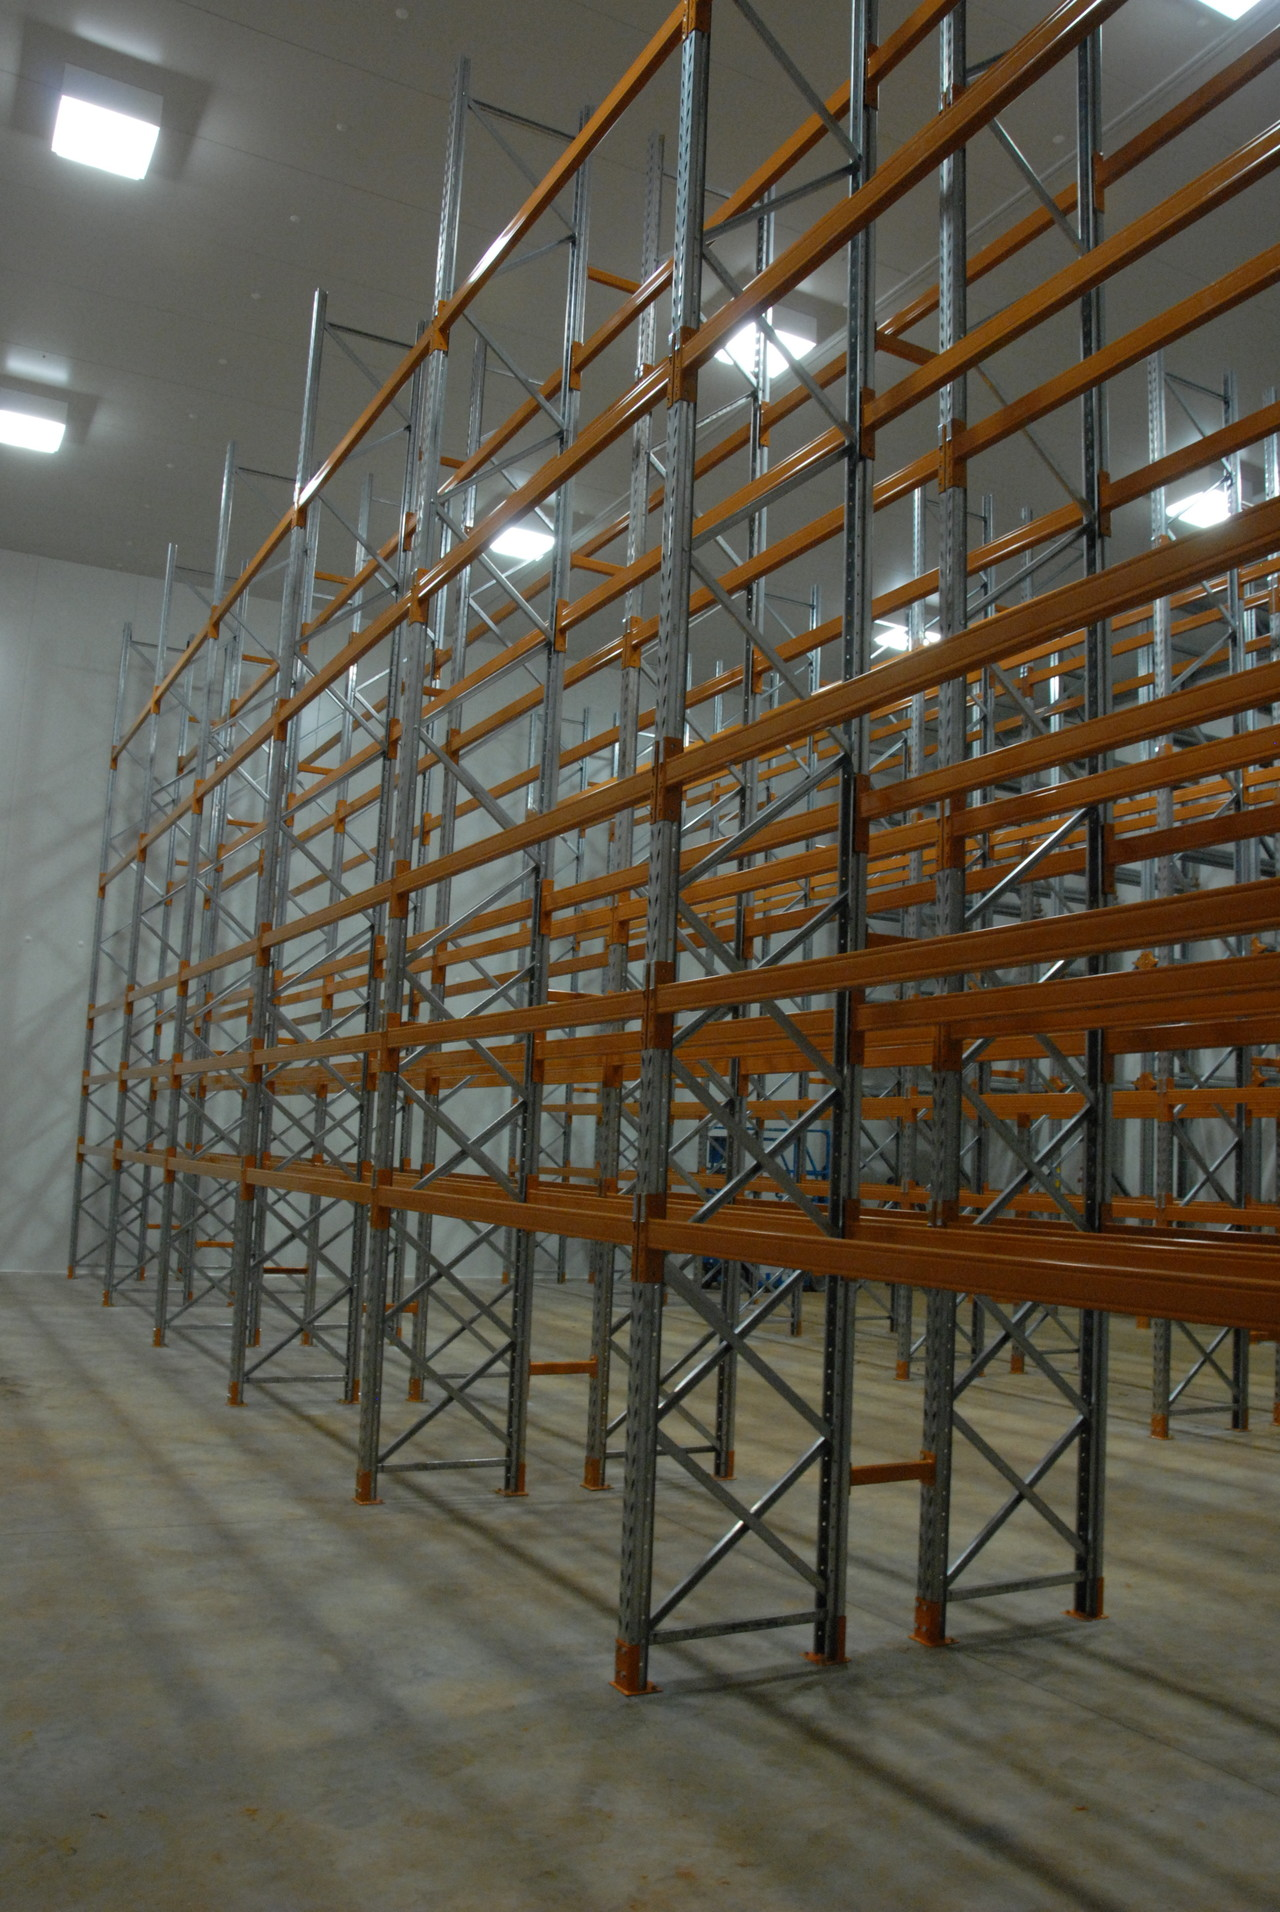 DSC_0025 storage racking system furniture darwin